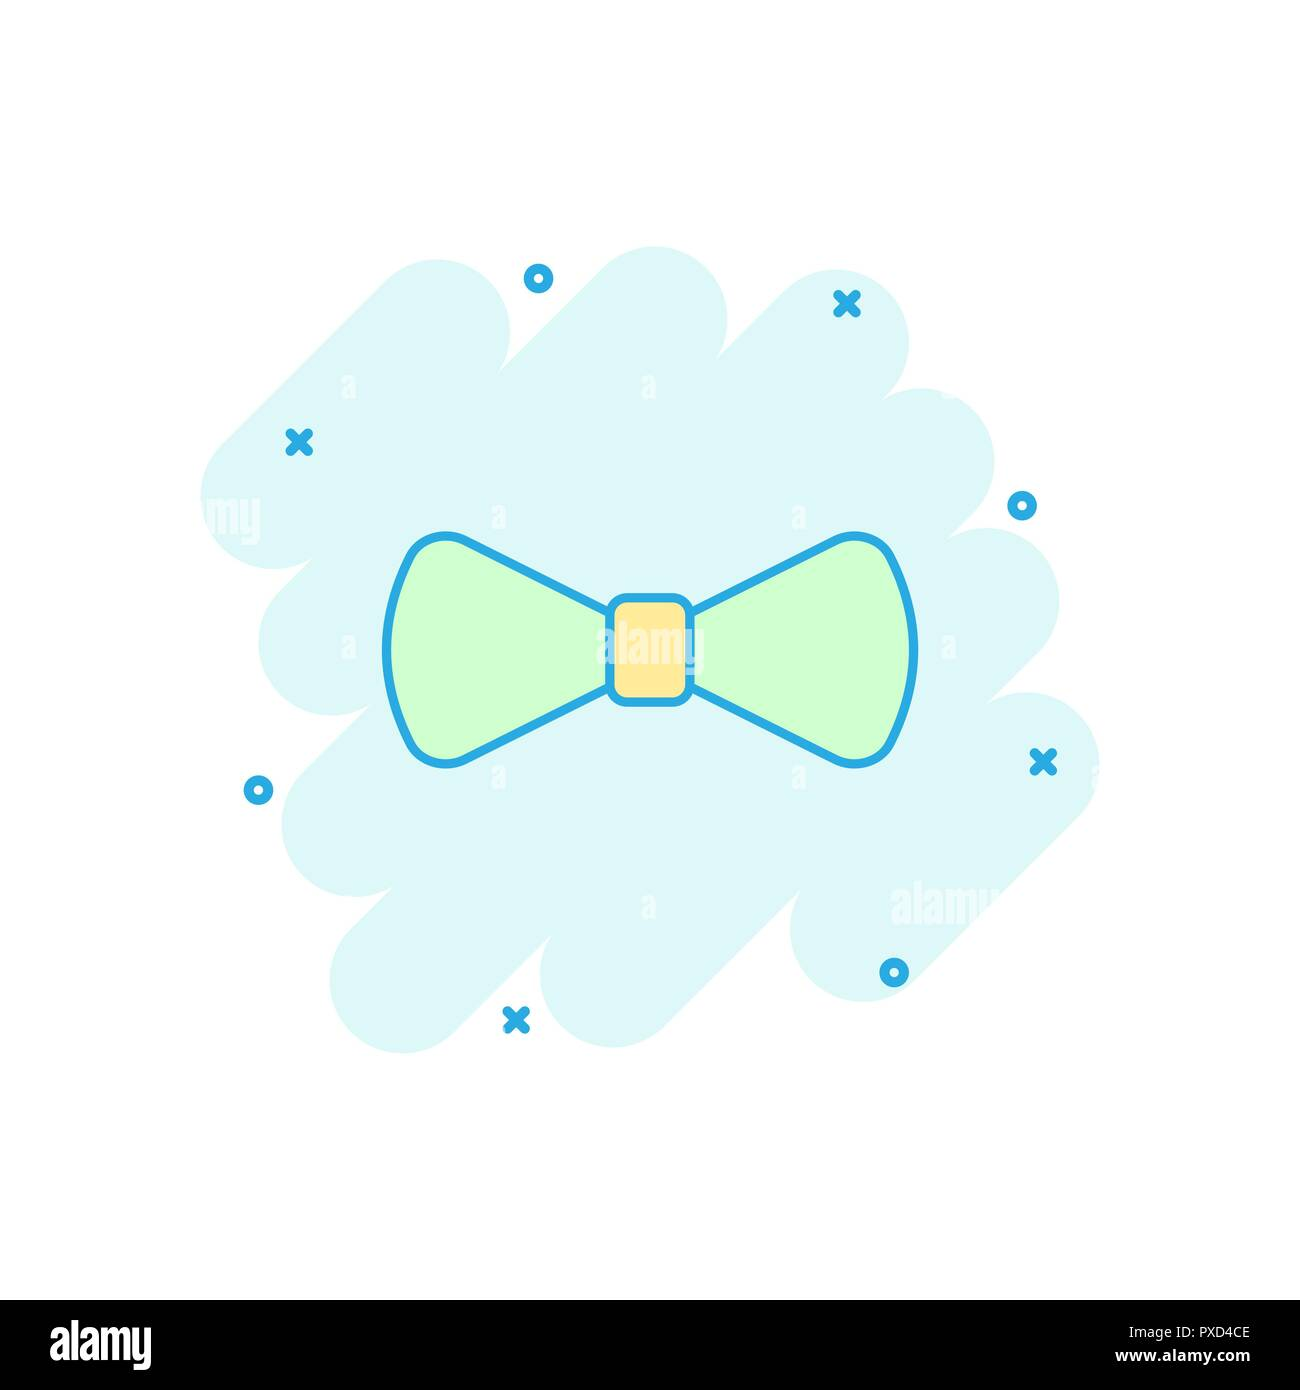 Bow Tie Vector Vectors Cut Out Stock Images Pictures Alamy Diagram Cartoon Icon In Comic Style Necktie Sign Illustration Pictogram